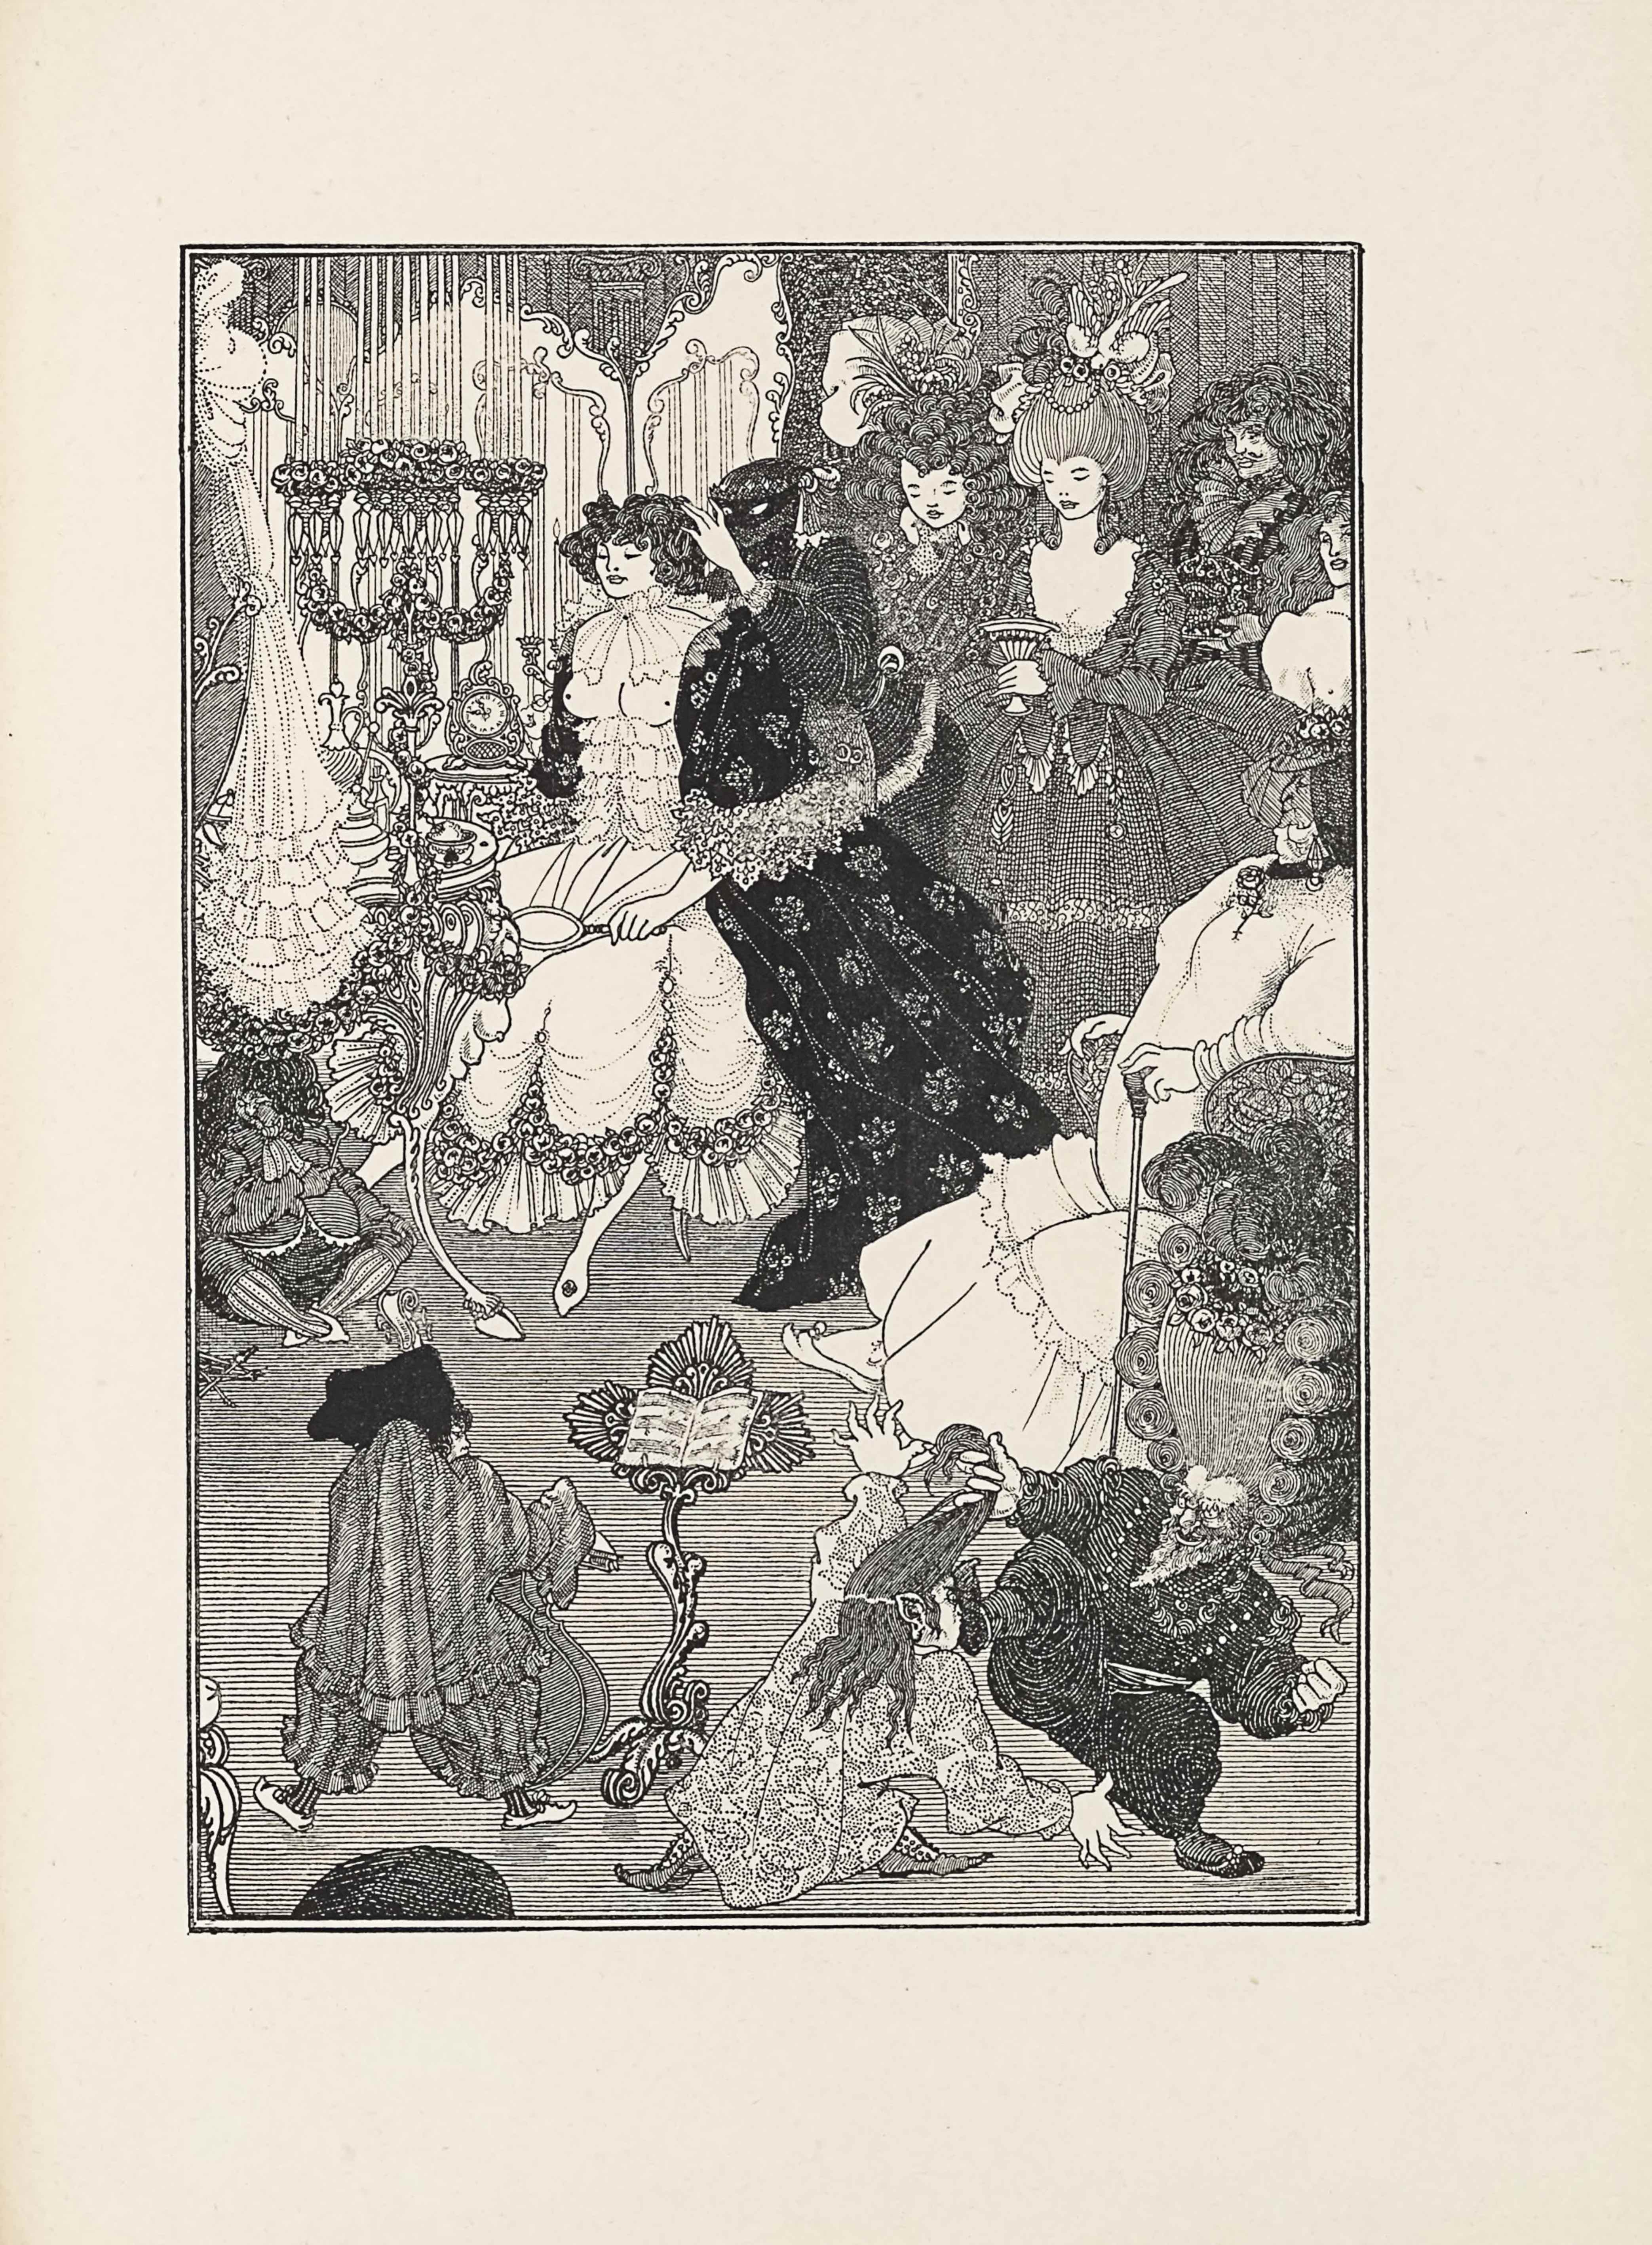 This line-block reproduction of a pen-and-ink drawing is in portrait orientation. The image is of a room or boudoir that includes one woman getting ready and other people standing around her, while small men fight and play music. In the foreground are three small men. In the bottom left corner an ornamented chair legs sticks out slightly. To the right of the chair leg is the first small man, about half the height of any of the women in the image. He has his back to the viewer and is wearing baggy, vertically striped pants, and a long sleeve shirt with ruffles on the edges. He has a hunchback. On his feet he wears slippers with lifted toes. His face is turned slightly to the right and a partial profile is visible. On his head he wears a large dark bonnet. He has a cello in his left hand and a bow in the right. To the right of the man is an ornamented music stand with an open book of sheet music rested on top. To the right of the music stand, in the foreground, are the other two small men. The man closest to the music stand is dressed in slippers and a long tunic that has a spiral pattern embroidered on it. He is leaning to the right and reaching out with both arms to grab the other man. He has elf ears and long hair, some of which is being pulled by the man to the right. He also has the other man's foot kicking at his face. The other man is facing the viewer. He has his right leg lifted up and is in the midst of kicking the other man's face. His right hand is holding the chunk of the other man's hair. He is wearing dark, baggy, horizontally striped pants, and a long sleeve shirt. He has a long pointy beard, mustache, and bushy eyebrows. His mouth is open and in a smile. His head is topped with a huge wig. The front of the wig has the hair pulled straight up vertically and the sides are lined with large coils. At the top of the wig is a garland of flowers and a plume of feathers. With his wig on he takes up nearly half the height of the page. Behind the wig is an older woman seated in a chair, facing to the left of the page. She is heavier-set and wearing slippers with a long gown that has a line of ruffles on the skirt. She has her arms on the chair armrests and in her left hand is a walking stick resting on the ground. She has a flower pinned to her chest and her face appears in profile. The back of her head is cut off by the frame. She is wearing tassel earrings and a headpiece with a few flowers on top and a light veil hanging down to her chin in front of her face. On the far left side of the page, also in the mid-ground, is a small man seated on the floor with his legs crossed. He has on vertically striped tights and a plain pair of slippers. He is wearing short pants and a top coat with ruffles at the bottom. He wears a large necktie and a big, dark, and curly wig. He seems to be underneath a table. Directly to the right of him is a tall ornamental candle holder that has flower garlands wrapped up around it and crystal pieces hanging off at the top. Above the man and to the left of the candle holder, a dress is hanging from a coat rack that is mostly out of the frame. The dress is long and ruffled. A table, the one that the man seems to be underneath, sits to the right of the dress and is topped with a perfume flask and a small jewelry box. A woman sits in a chair to the right of it, turned towards the viewer but slightly angled towards the left side of the page. She is dressed in a long skirt with a ruffled bottom and flower garlands that loop around above the ruffles. She has on a corset that rises to just below her chest. Her breasts are shown bare. Around her neck she has a transparent chiffon bow. She has on an open dressing gown decorated with a floral design, and it falls all the way to the ground. Her hair is short and curly, and a person to her right has their hands in it. In her left hand and resting on her lap is a handheld mirror. Behind the woman and taking up the top left corner of the page is a three-piece ornamented standing mirror, and in front of it are the long candles coming from the top of the ornamented holder. A wall is directly behind the mirror. The person who has their hands in the seated woman's hair is dressed in all black. Their face is completed covered in a mask except for their eyes. The person is wearing a tight long sleeve shirt and pants. More in the background and to the right of the dark figure are four people standing. The person on the far left is a woman, visible only from the waist up and wearing a floral patterned gown. She has on a tight scarf and is looking towards the left side of the page at the masked figure. She has on a large wig of coiled hair with a big leaf protruding out with an assortment of other florals on top. To her right is a woman fully visible. She is wearing a ballroom gown with a big skirt and long sleeves. The dress has a low neckline and she is holding a goblet with her left hand. She has on a big wig with straight hair and a chain of pearls hangs down from the top where many flowers and plumes rise up. To her right, the upper body of a man is visible. He is turned towards the left side of the page with a three-quarters profile visible. He has on a neck piece with big ruffles and holds a decorated box. He has a small twirled mustache and long wavy hair. To the right of him is half the upper body of another man, cut off by the frame. This man is shirtless and his head is turned to the left side of the page. He has long wavy hair. Behind the four figures that make up the right side background is a wall.